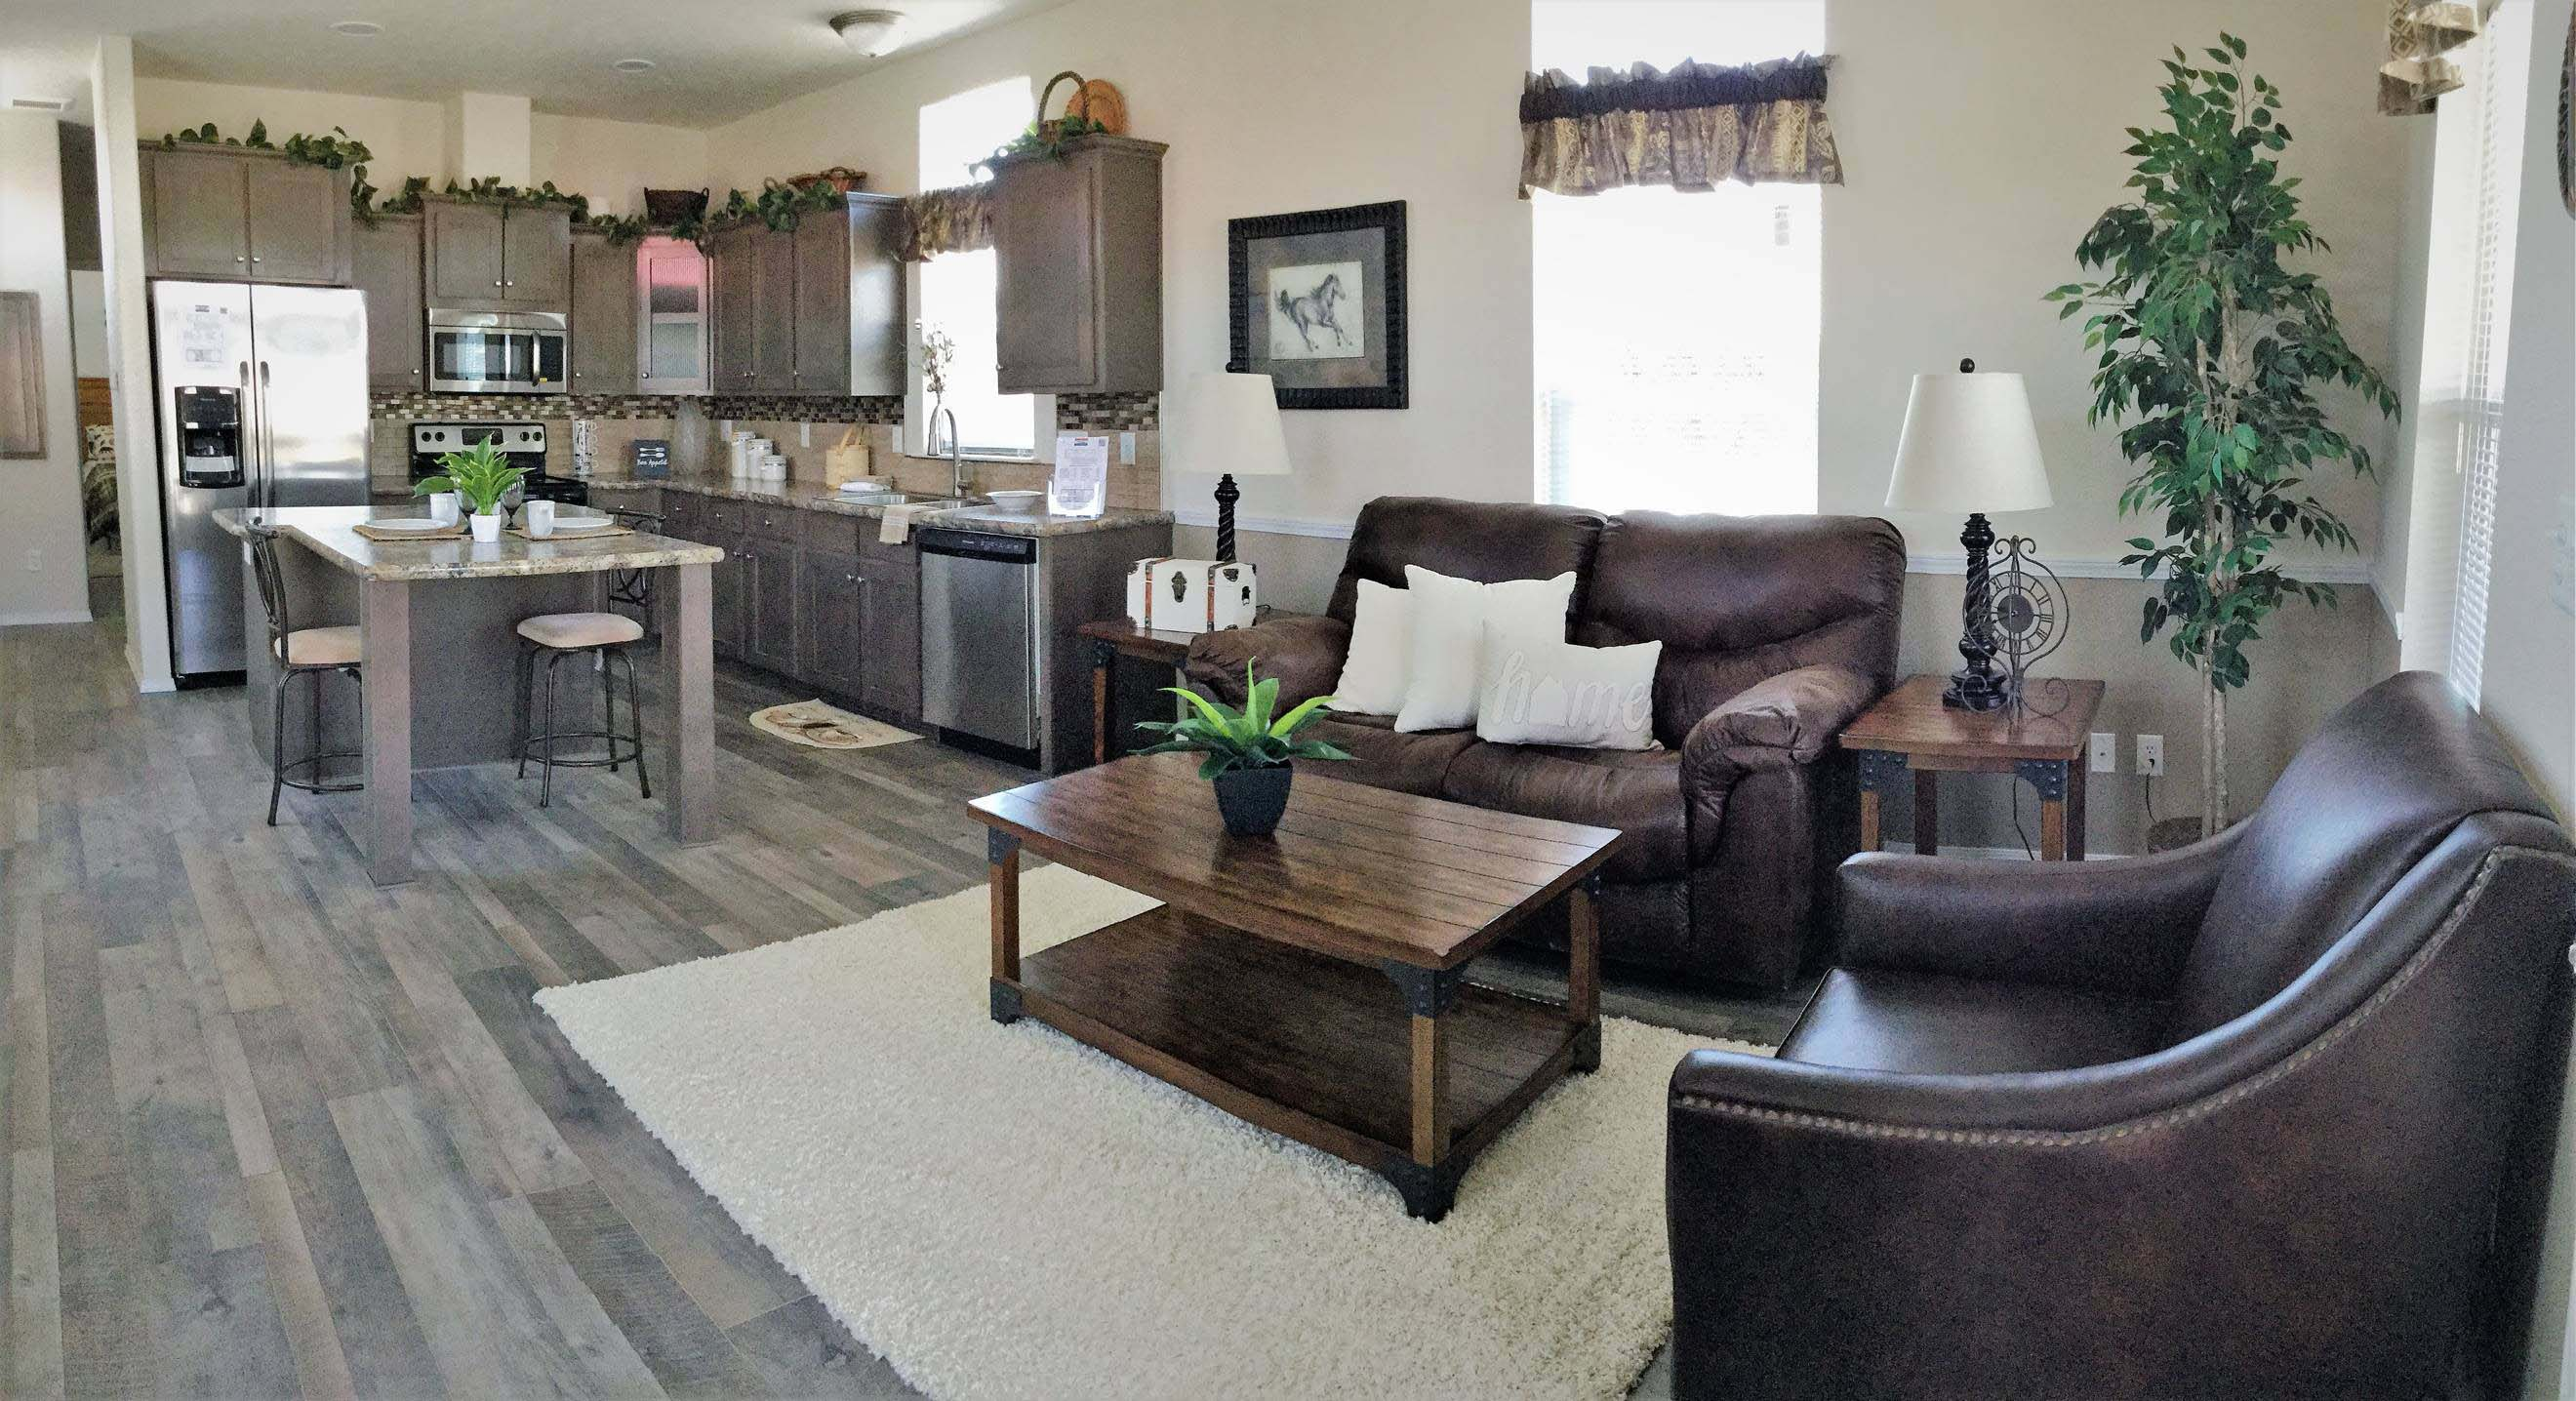 Ls Home american home centers in belgrade, montana - manufactured home dealer